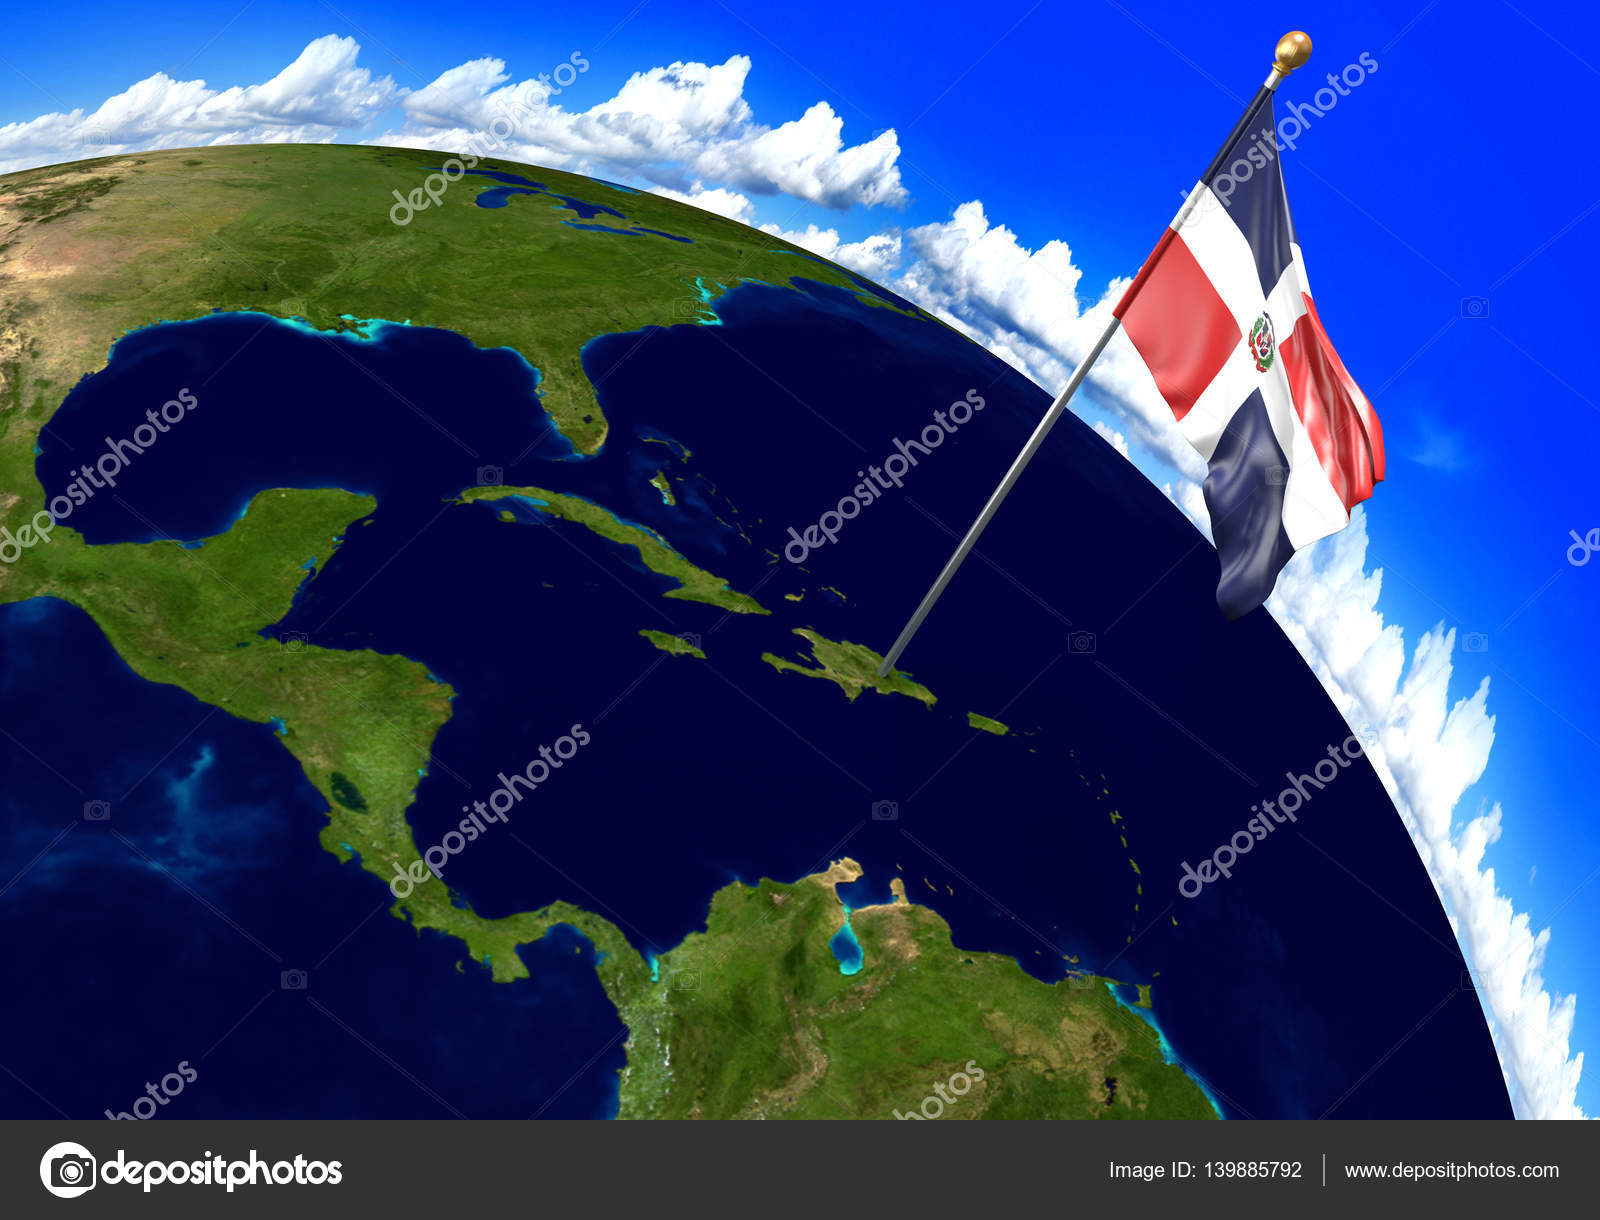 Dominican Republic national flag marking the country location on